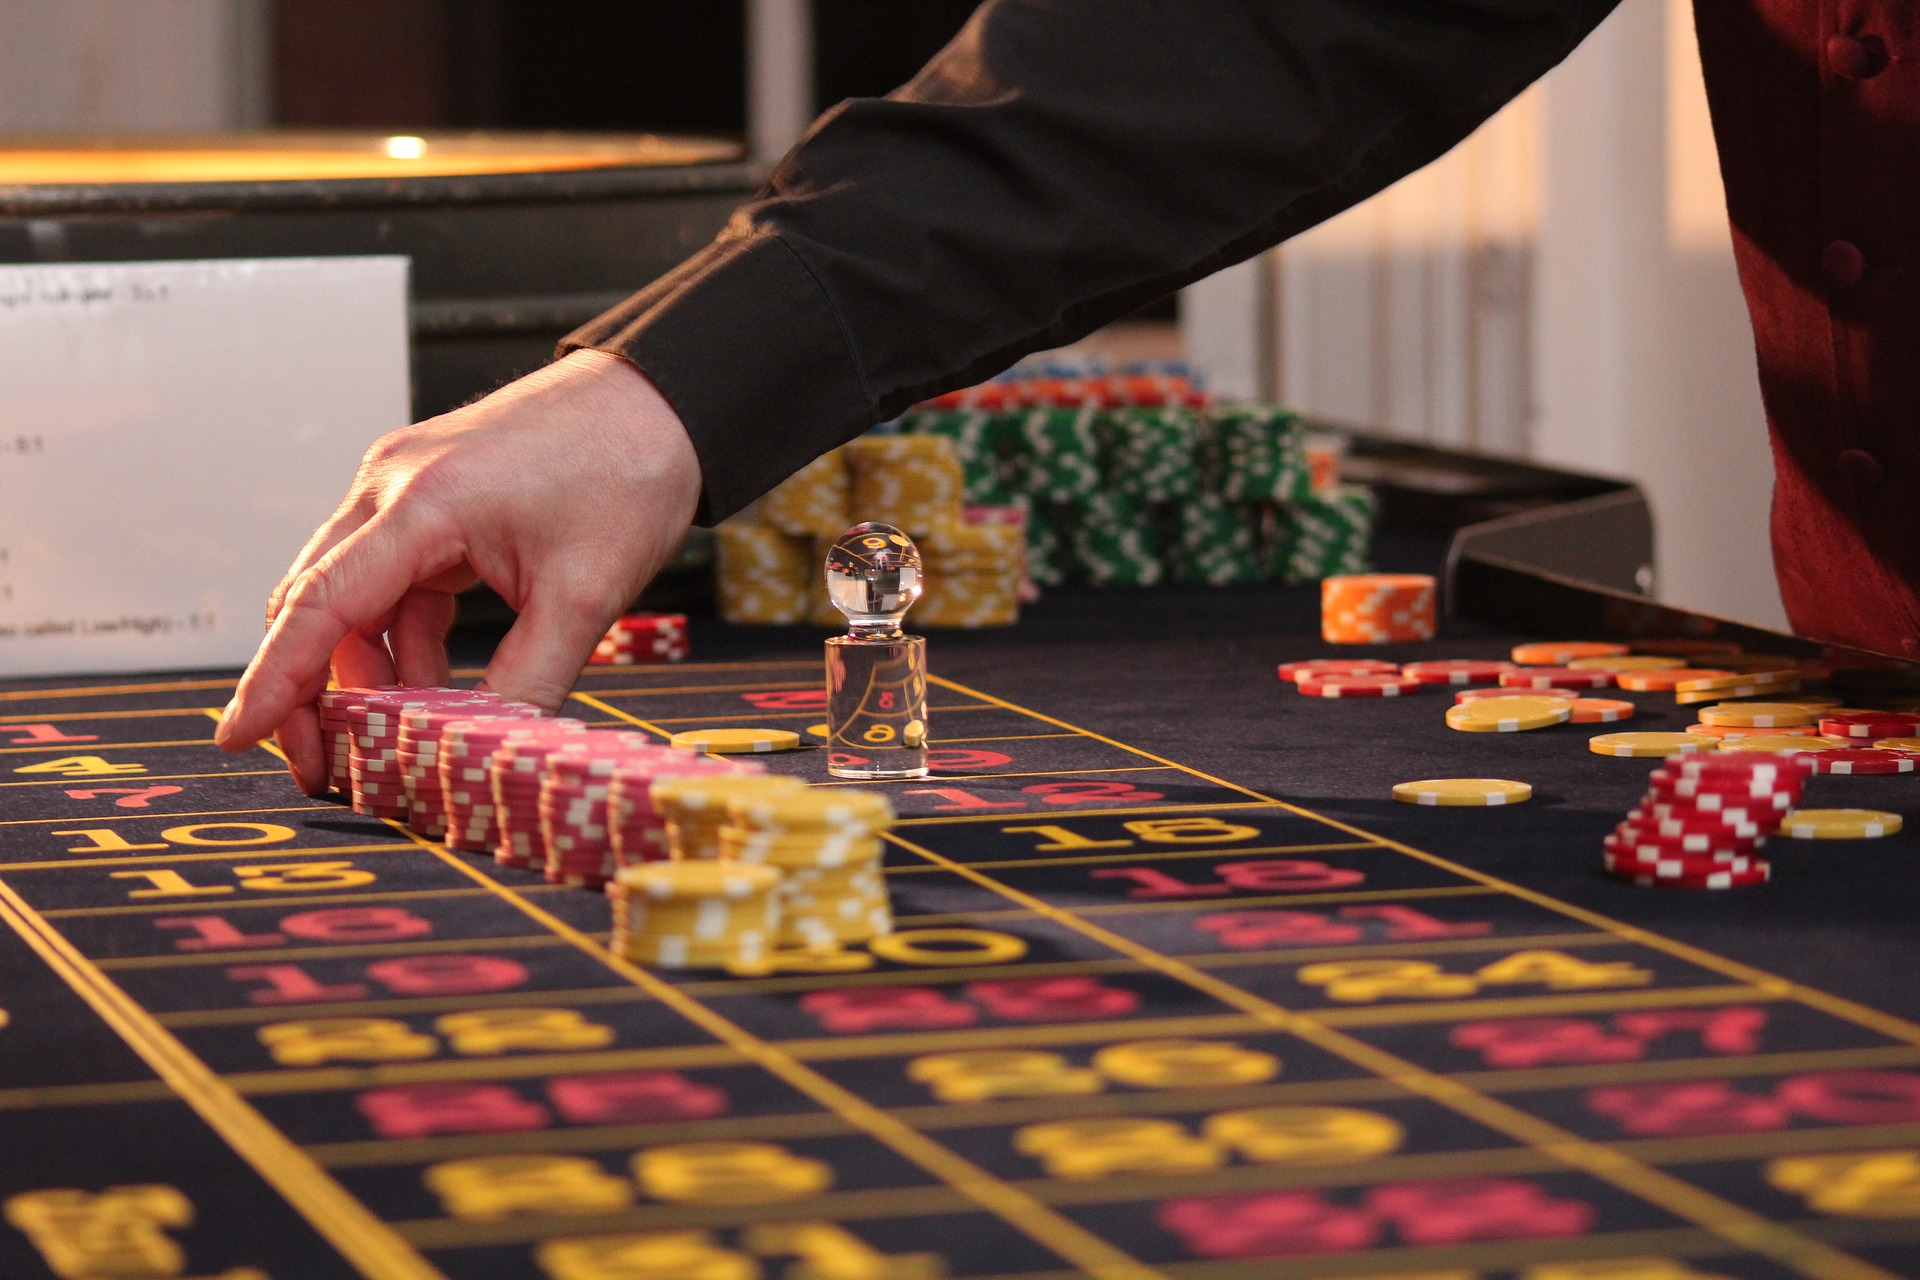 Can We Open a Casino in Indonesia?